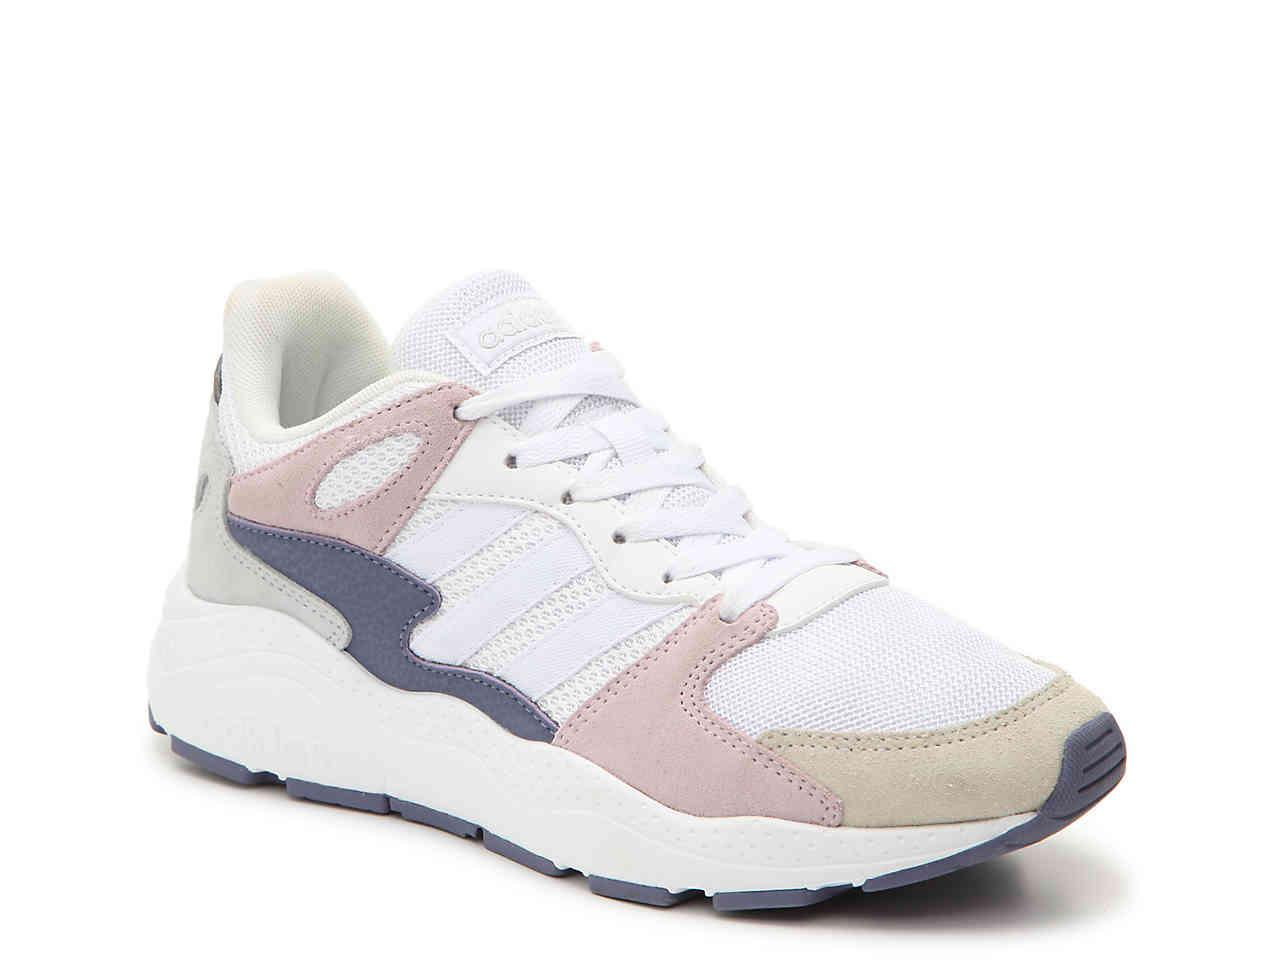 4b4fc4296 Lyst - adidas Chaos Sneaker in White